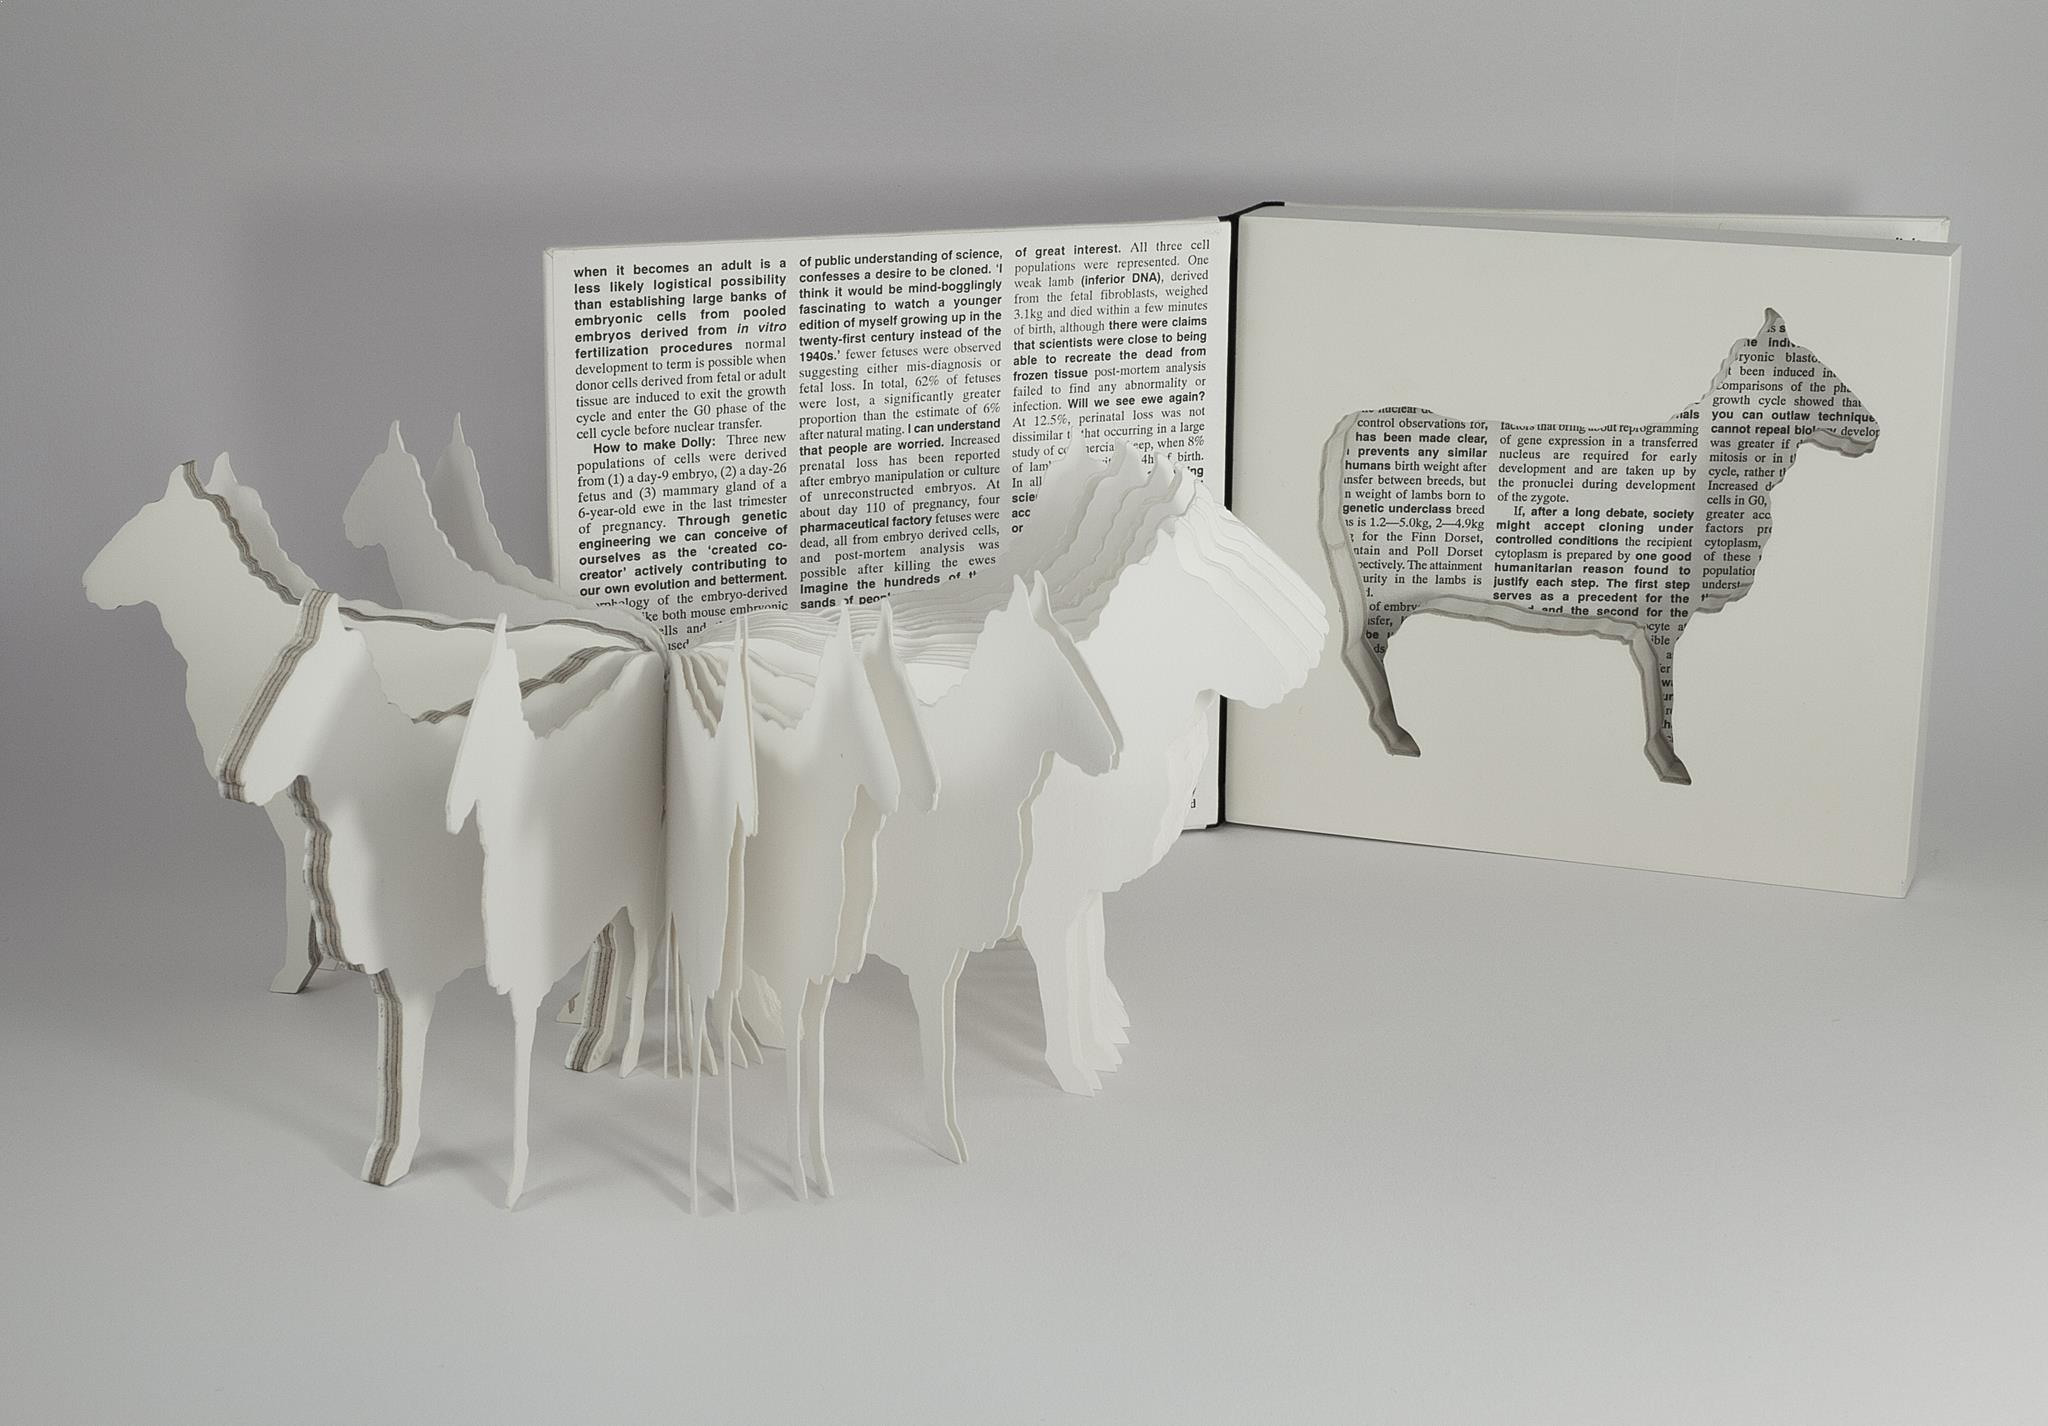 Full view of artist book Dolly: Edition Unlimited by Karen Bleitz, a pop-out jig-sawed book-work on the theme of the cloned sheep, Dolly, with a freestanding herd of sheep integrated into the formof the book.